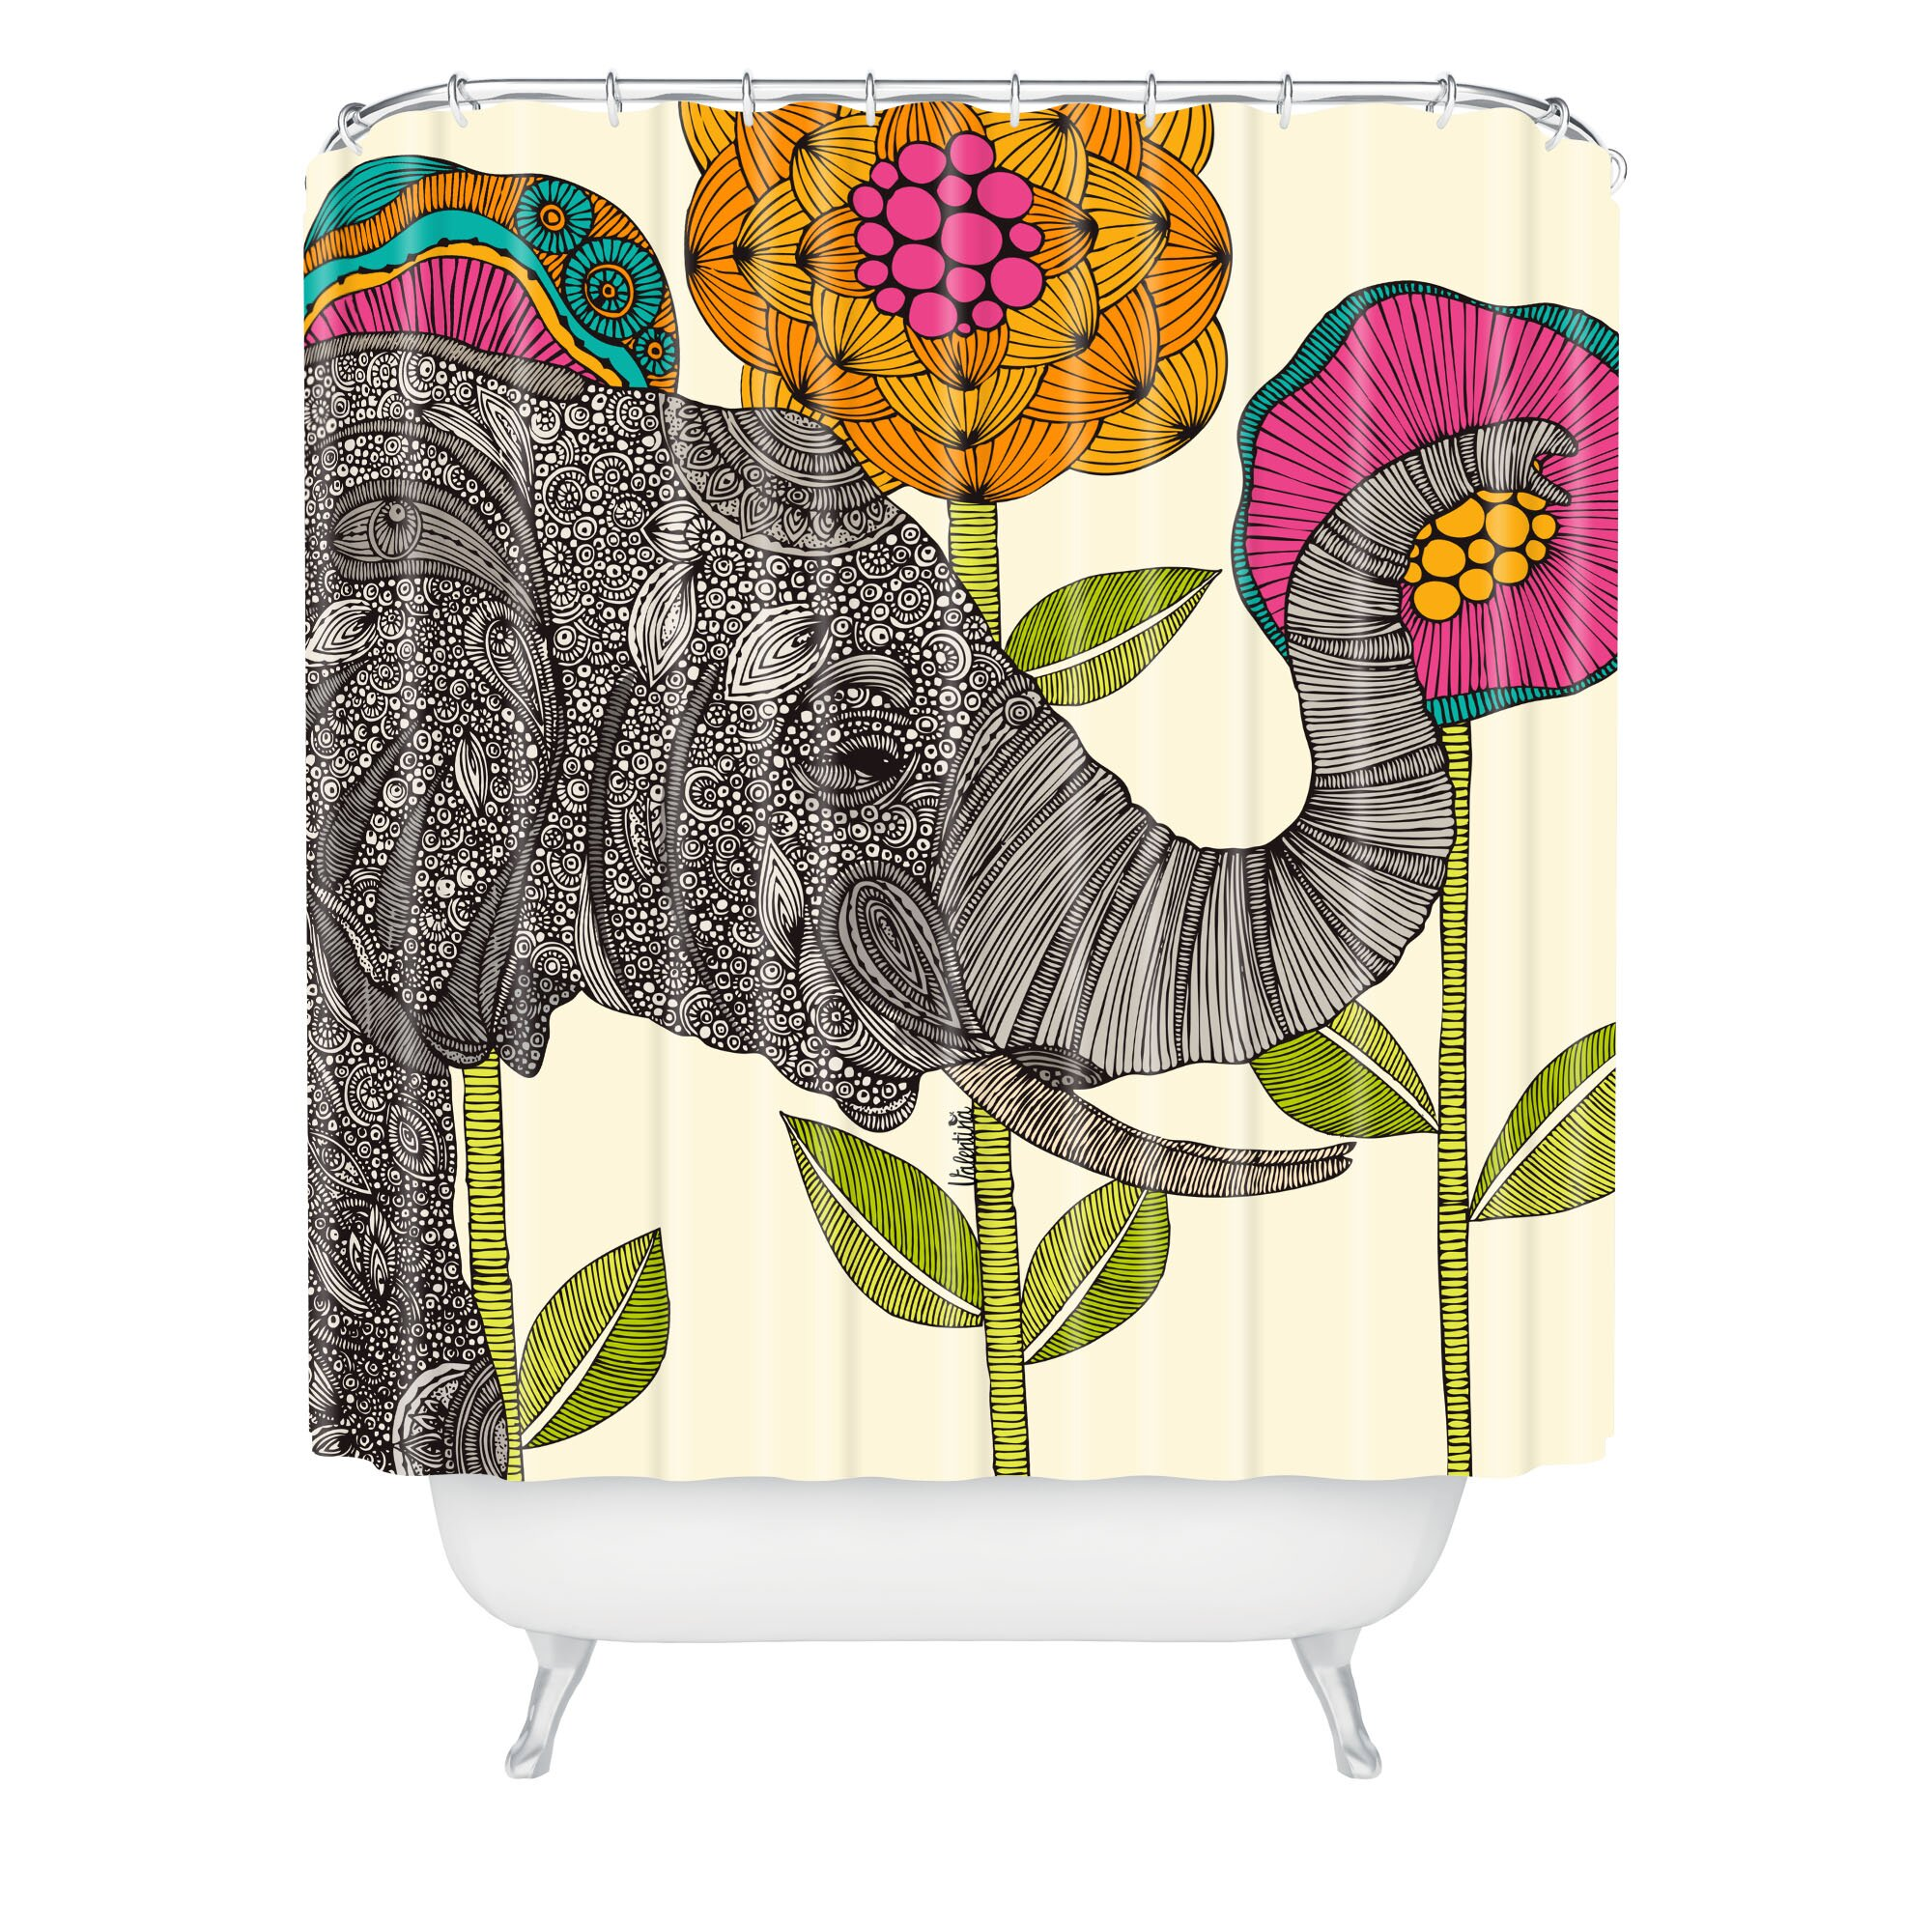 Bungalow Rose Deepak Aaron Shower Curtain & Reviews | Wayfair